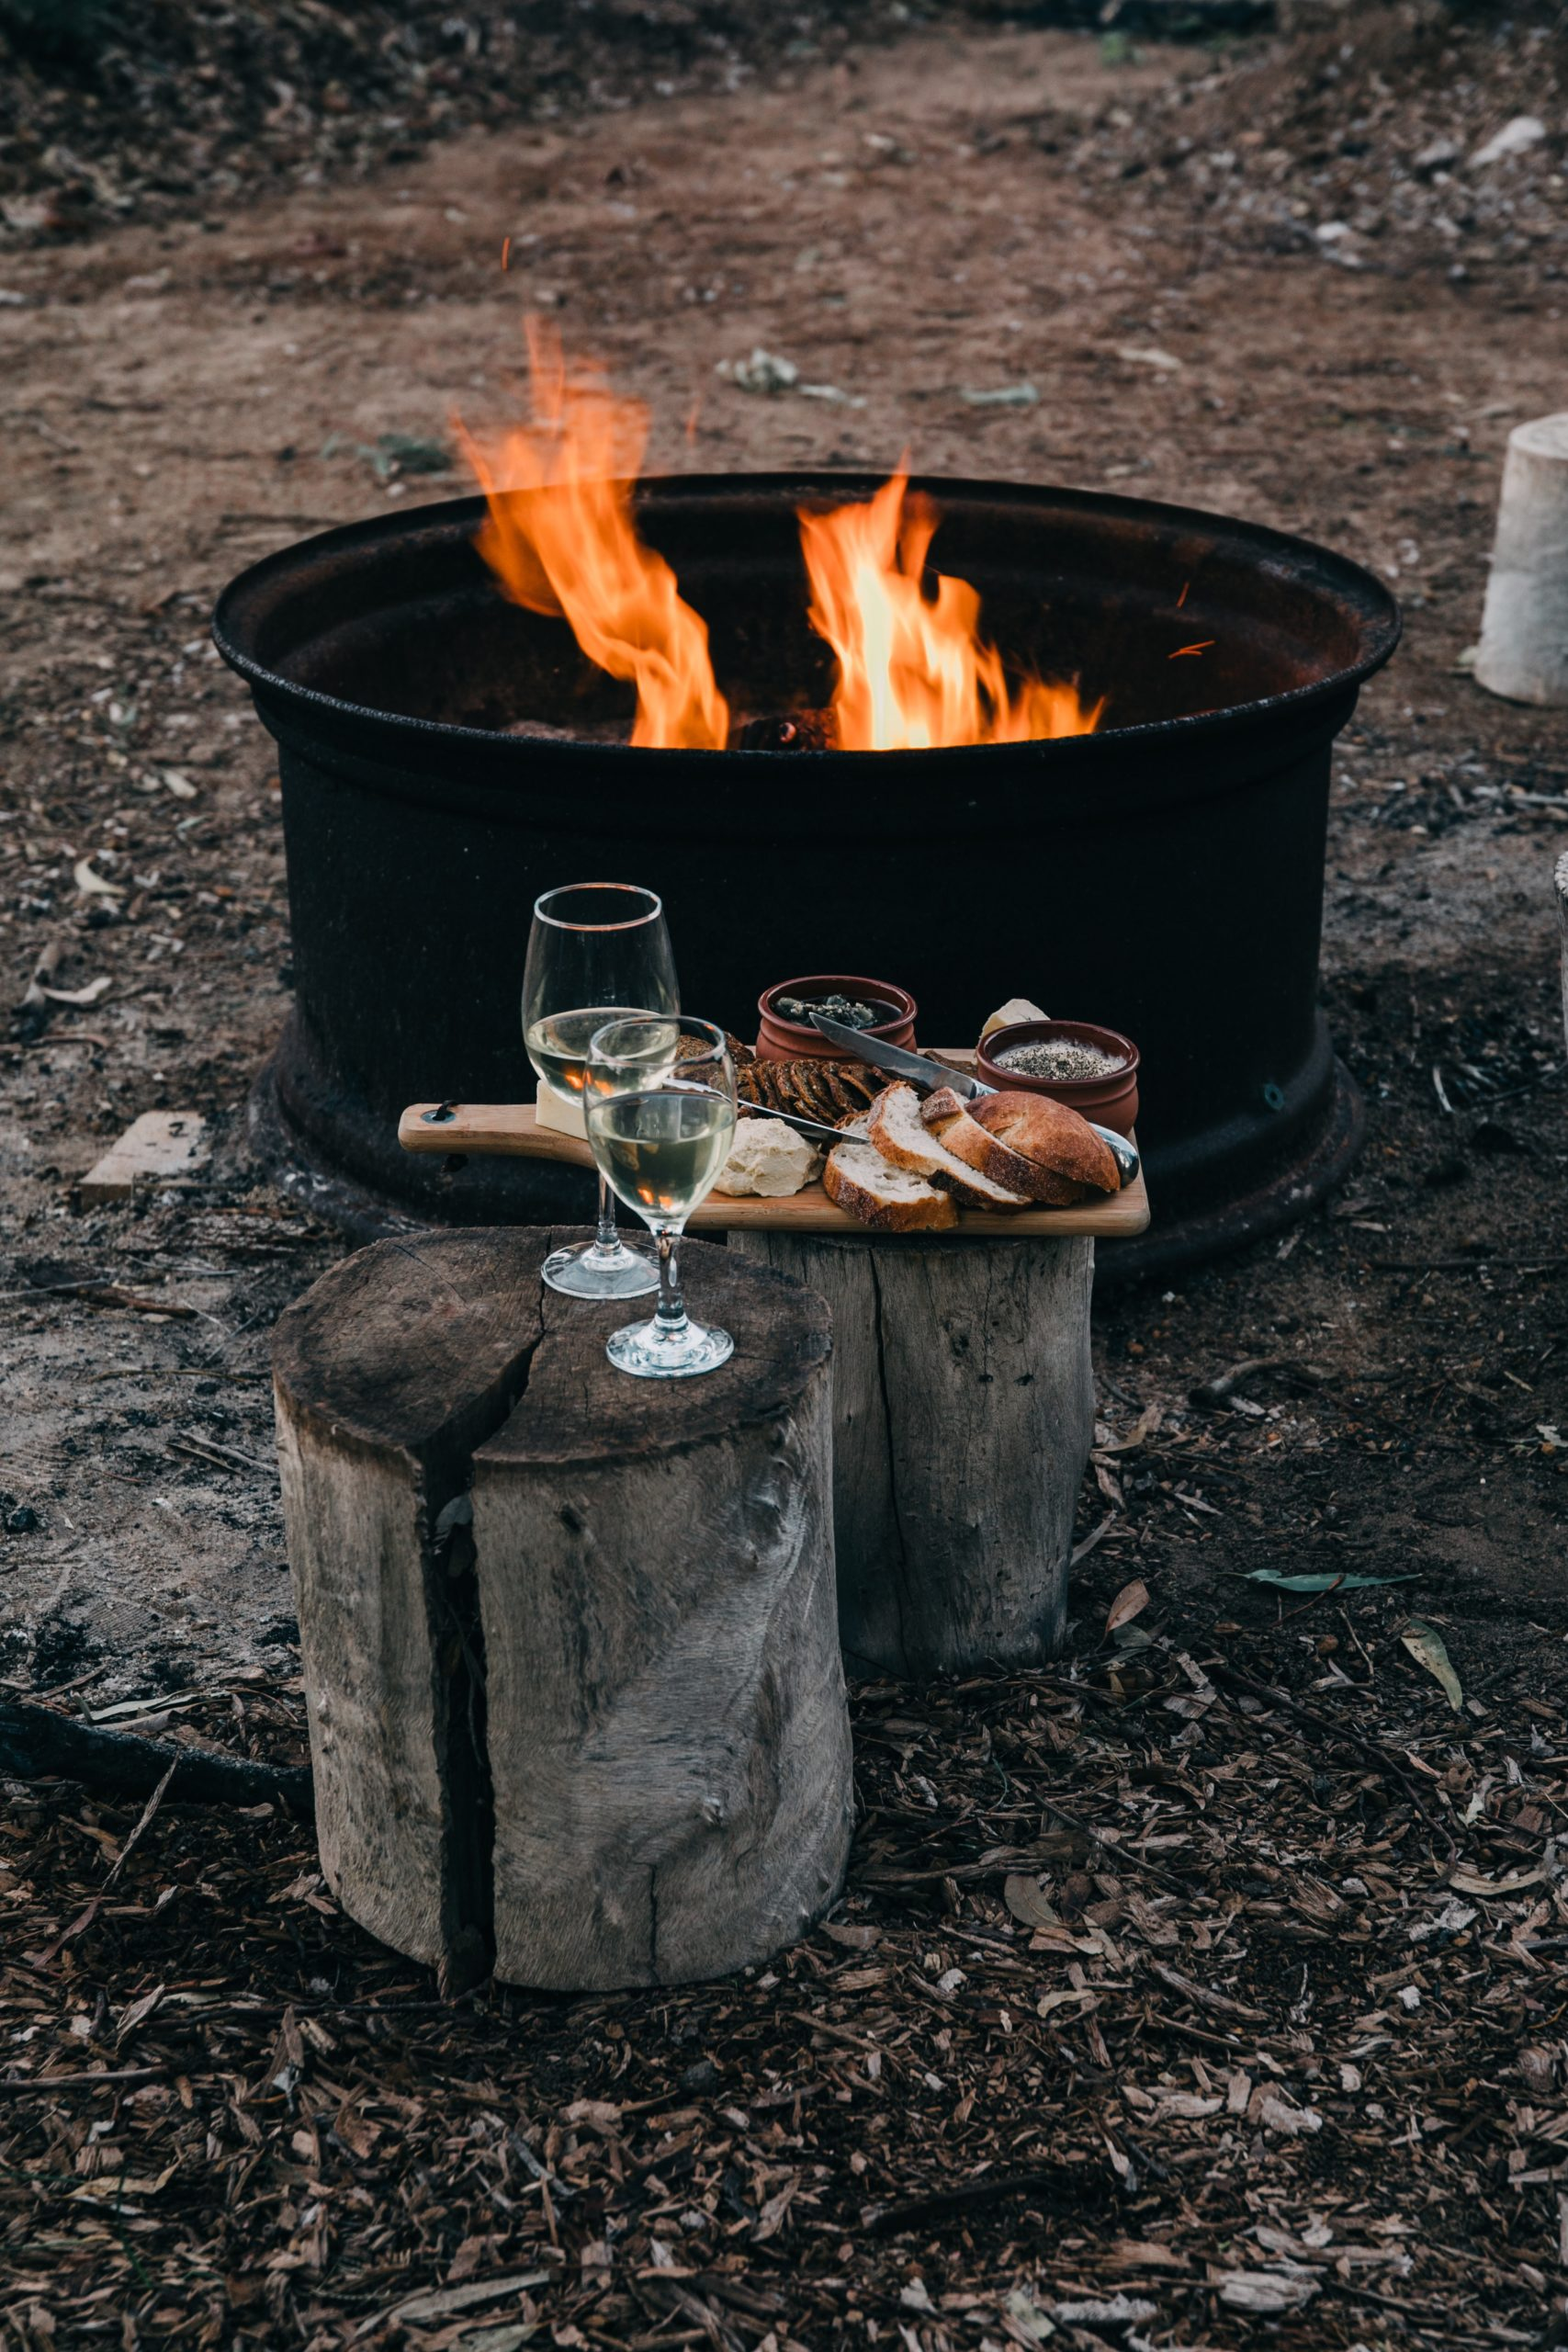 Charcuterie board with wine glasses on wood stump's by a campfire